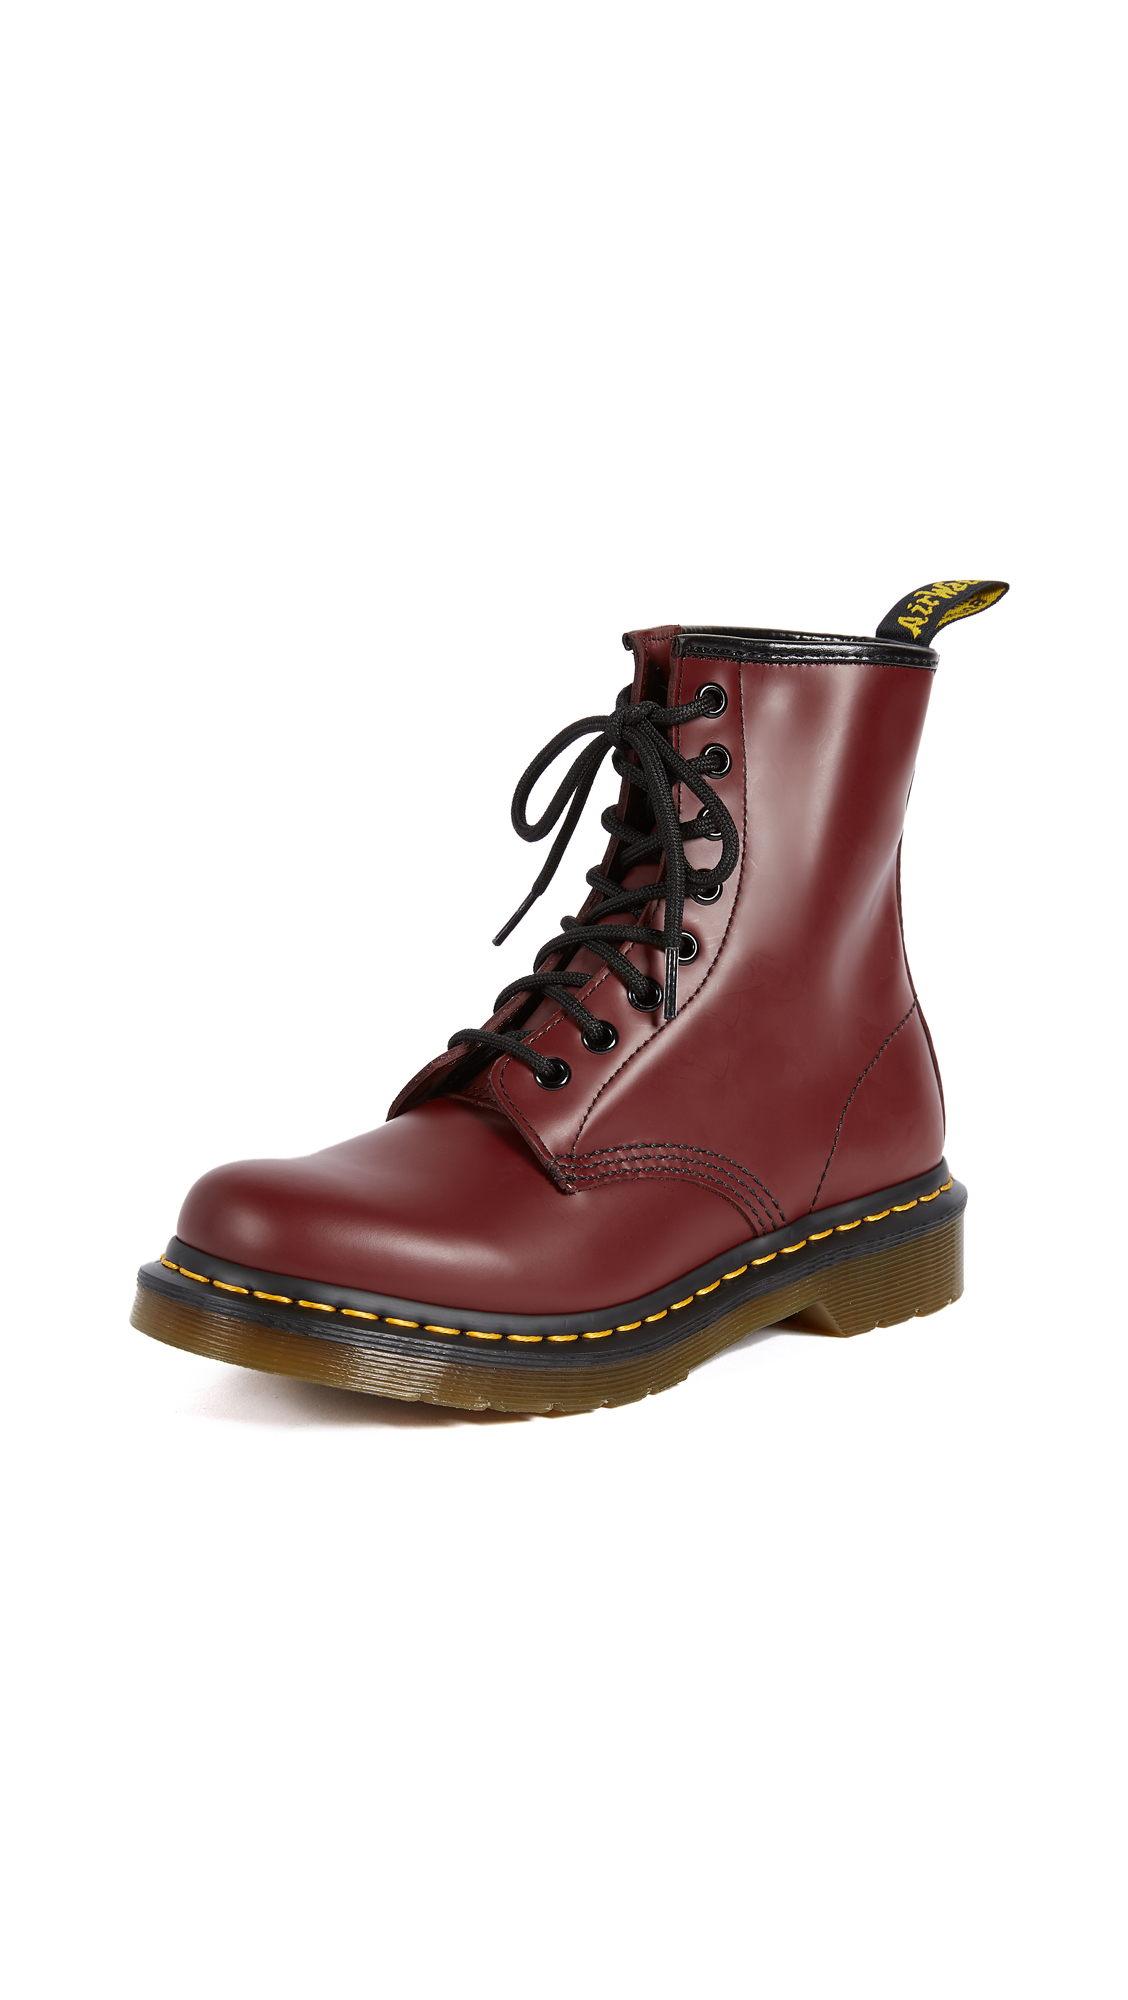 Dr. Martens 1460 8 Eye Boot - Cherry Red